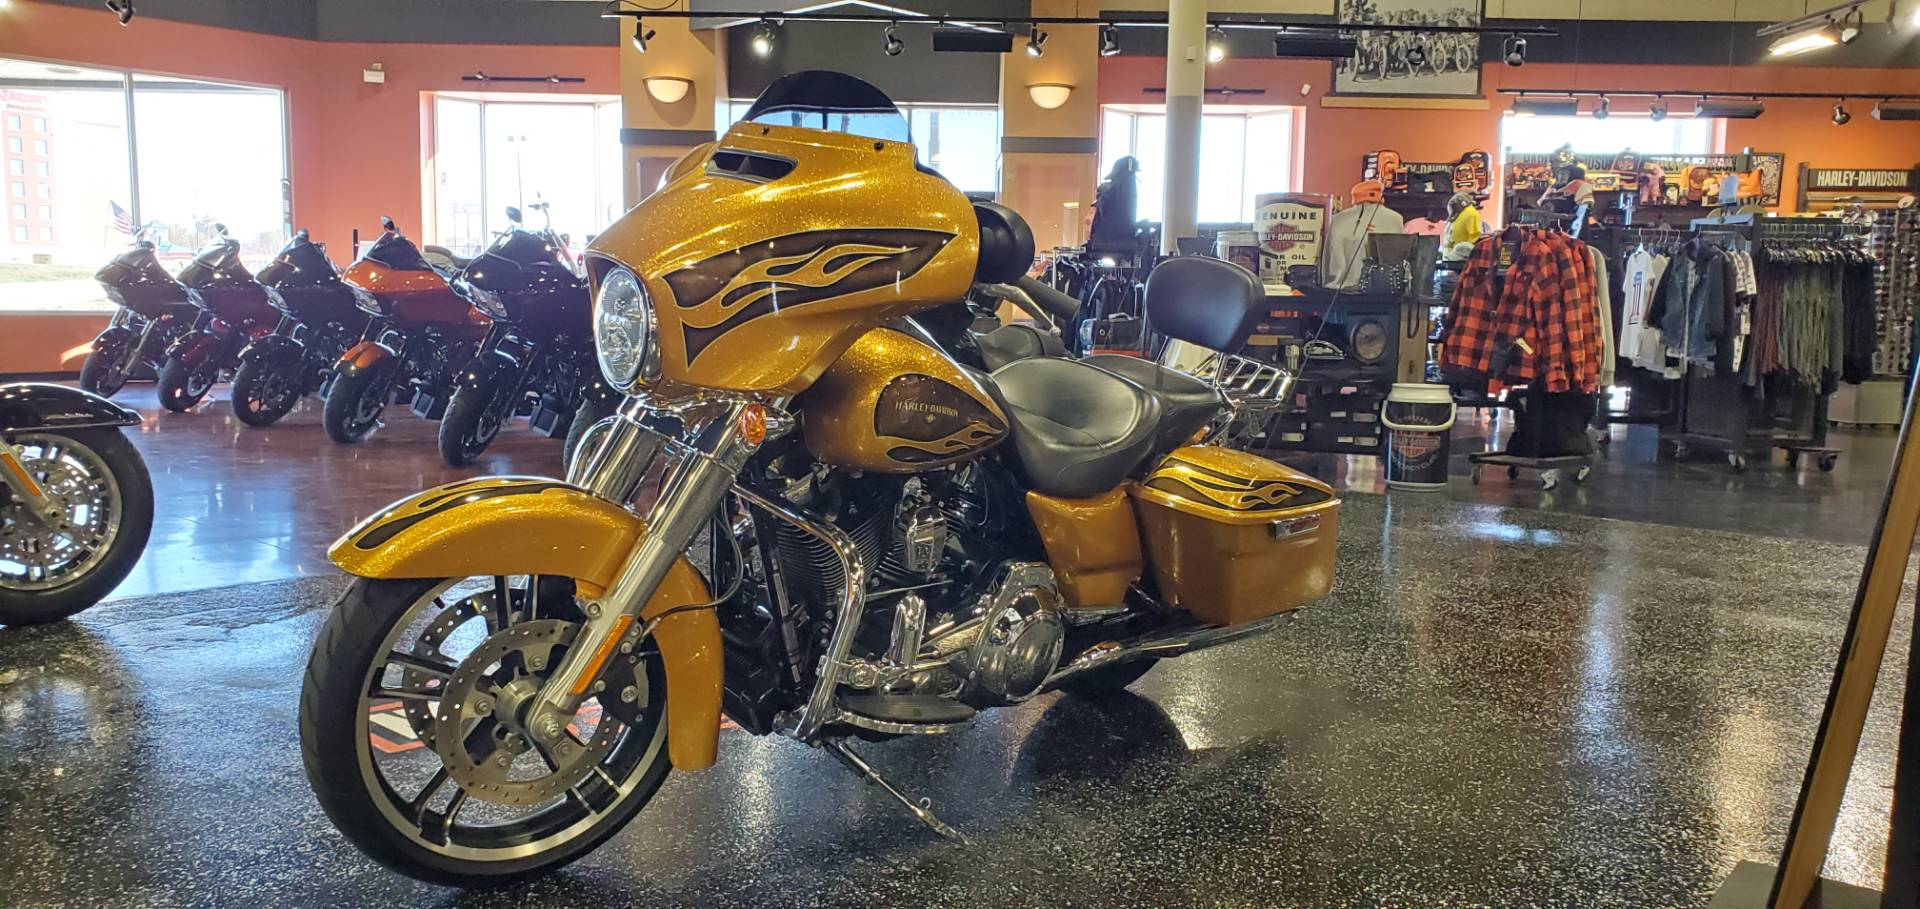 2016 Harley-Davidson STREET GLIDE SPECIAL in Mount Vernon, Illinois - Photo 3